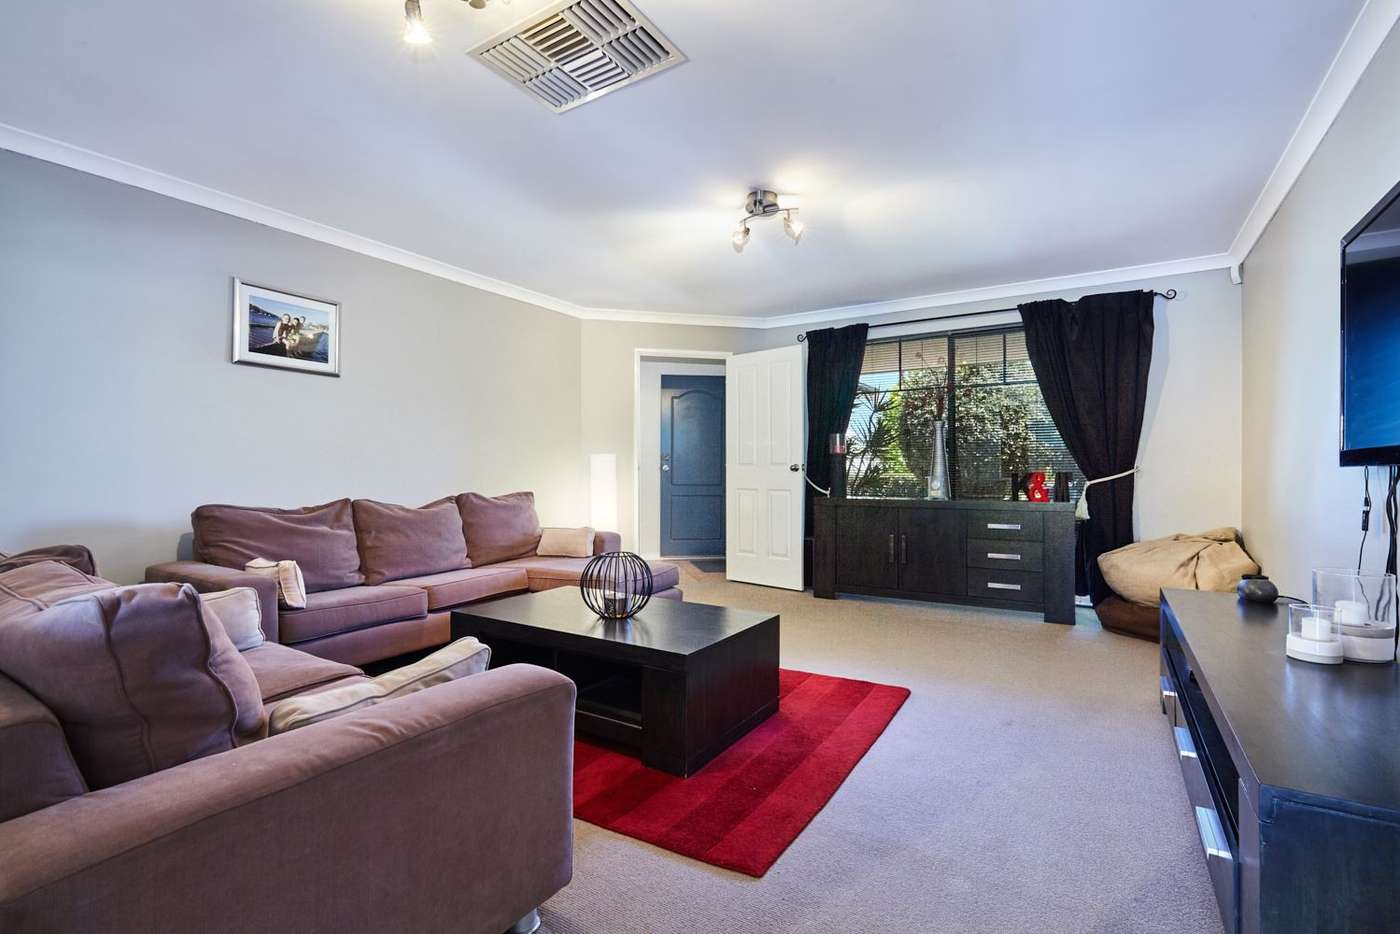 Sixth view of Homely house listing, 19 Lakefront Avenue, Beeliar WA 6164